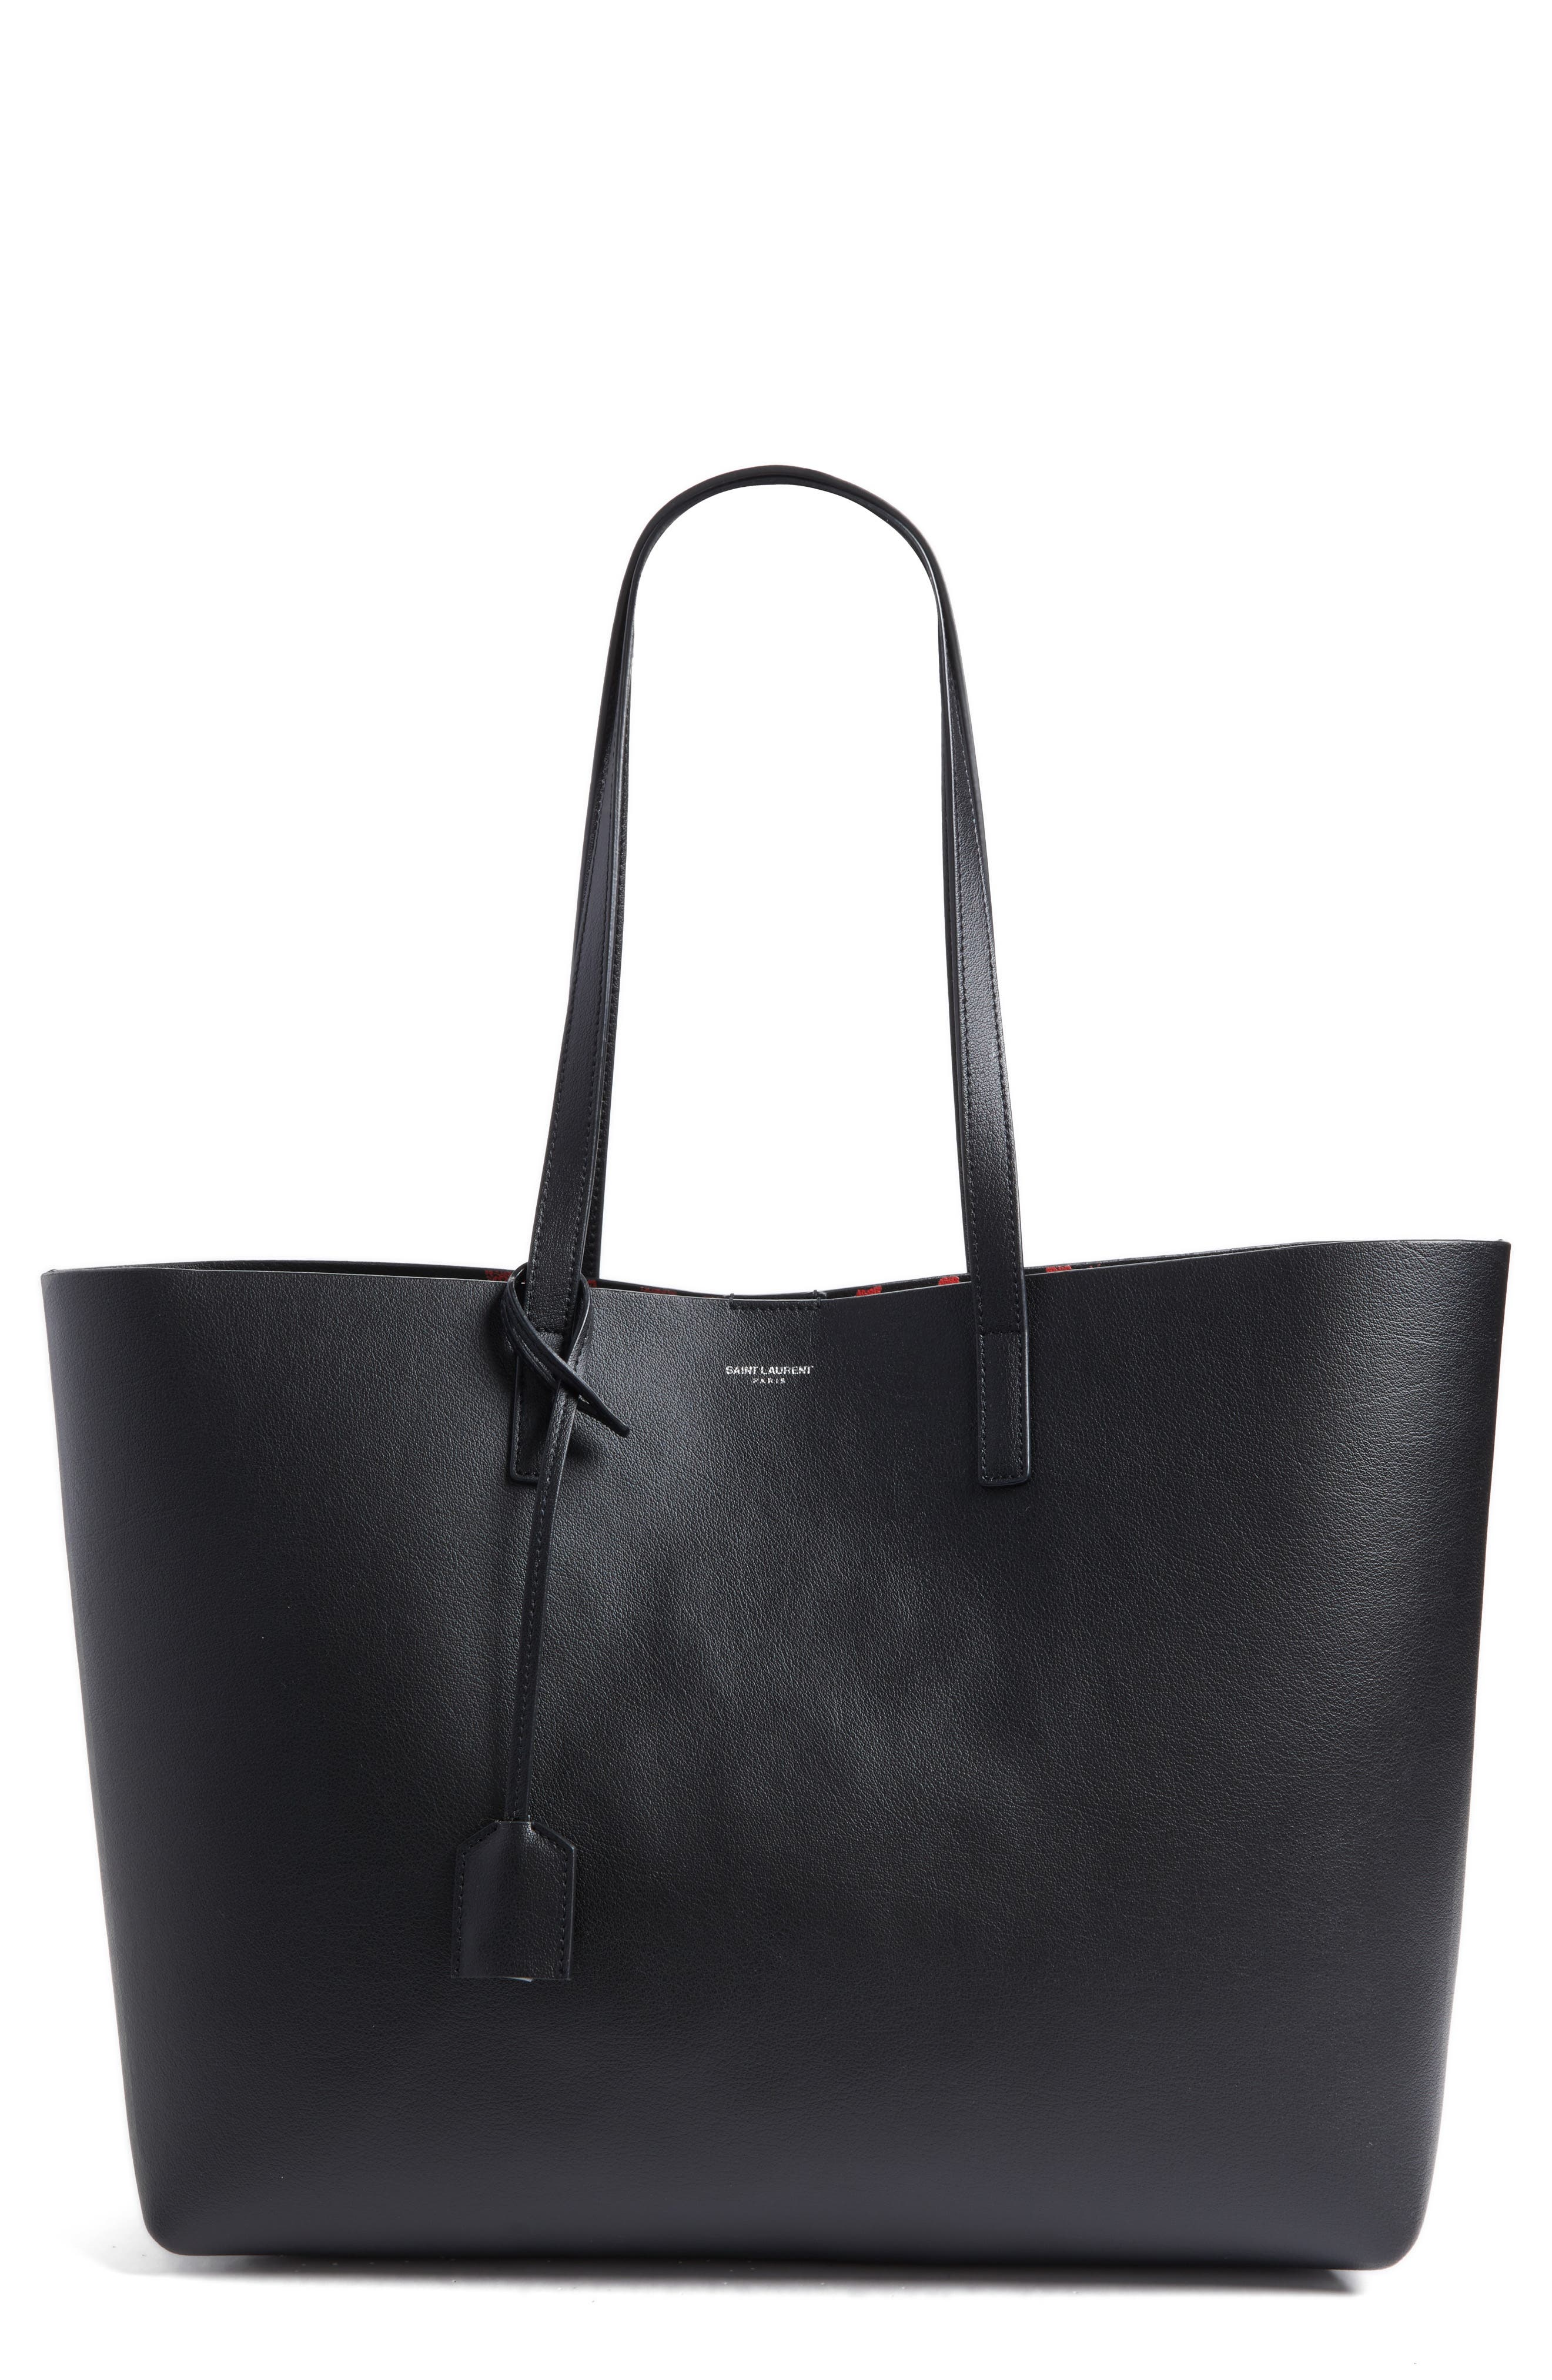 Alternate Image 1 Selected - Saint Laurent East/West Leather Tote with Leopard Spot Zip Pouch